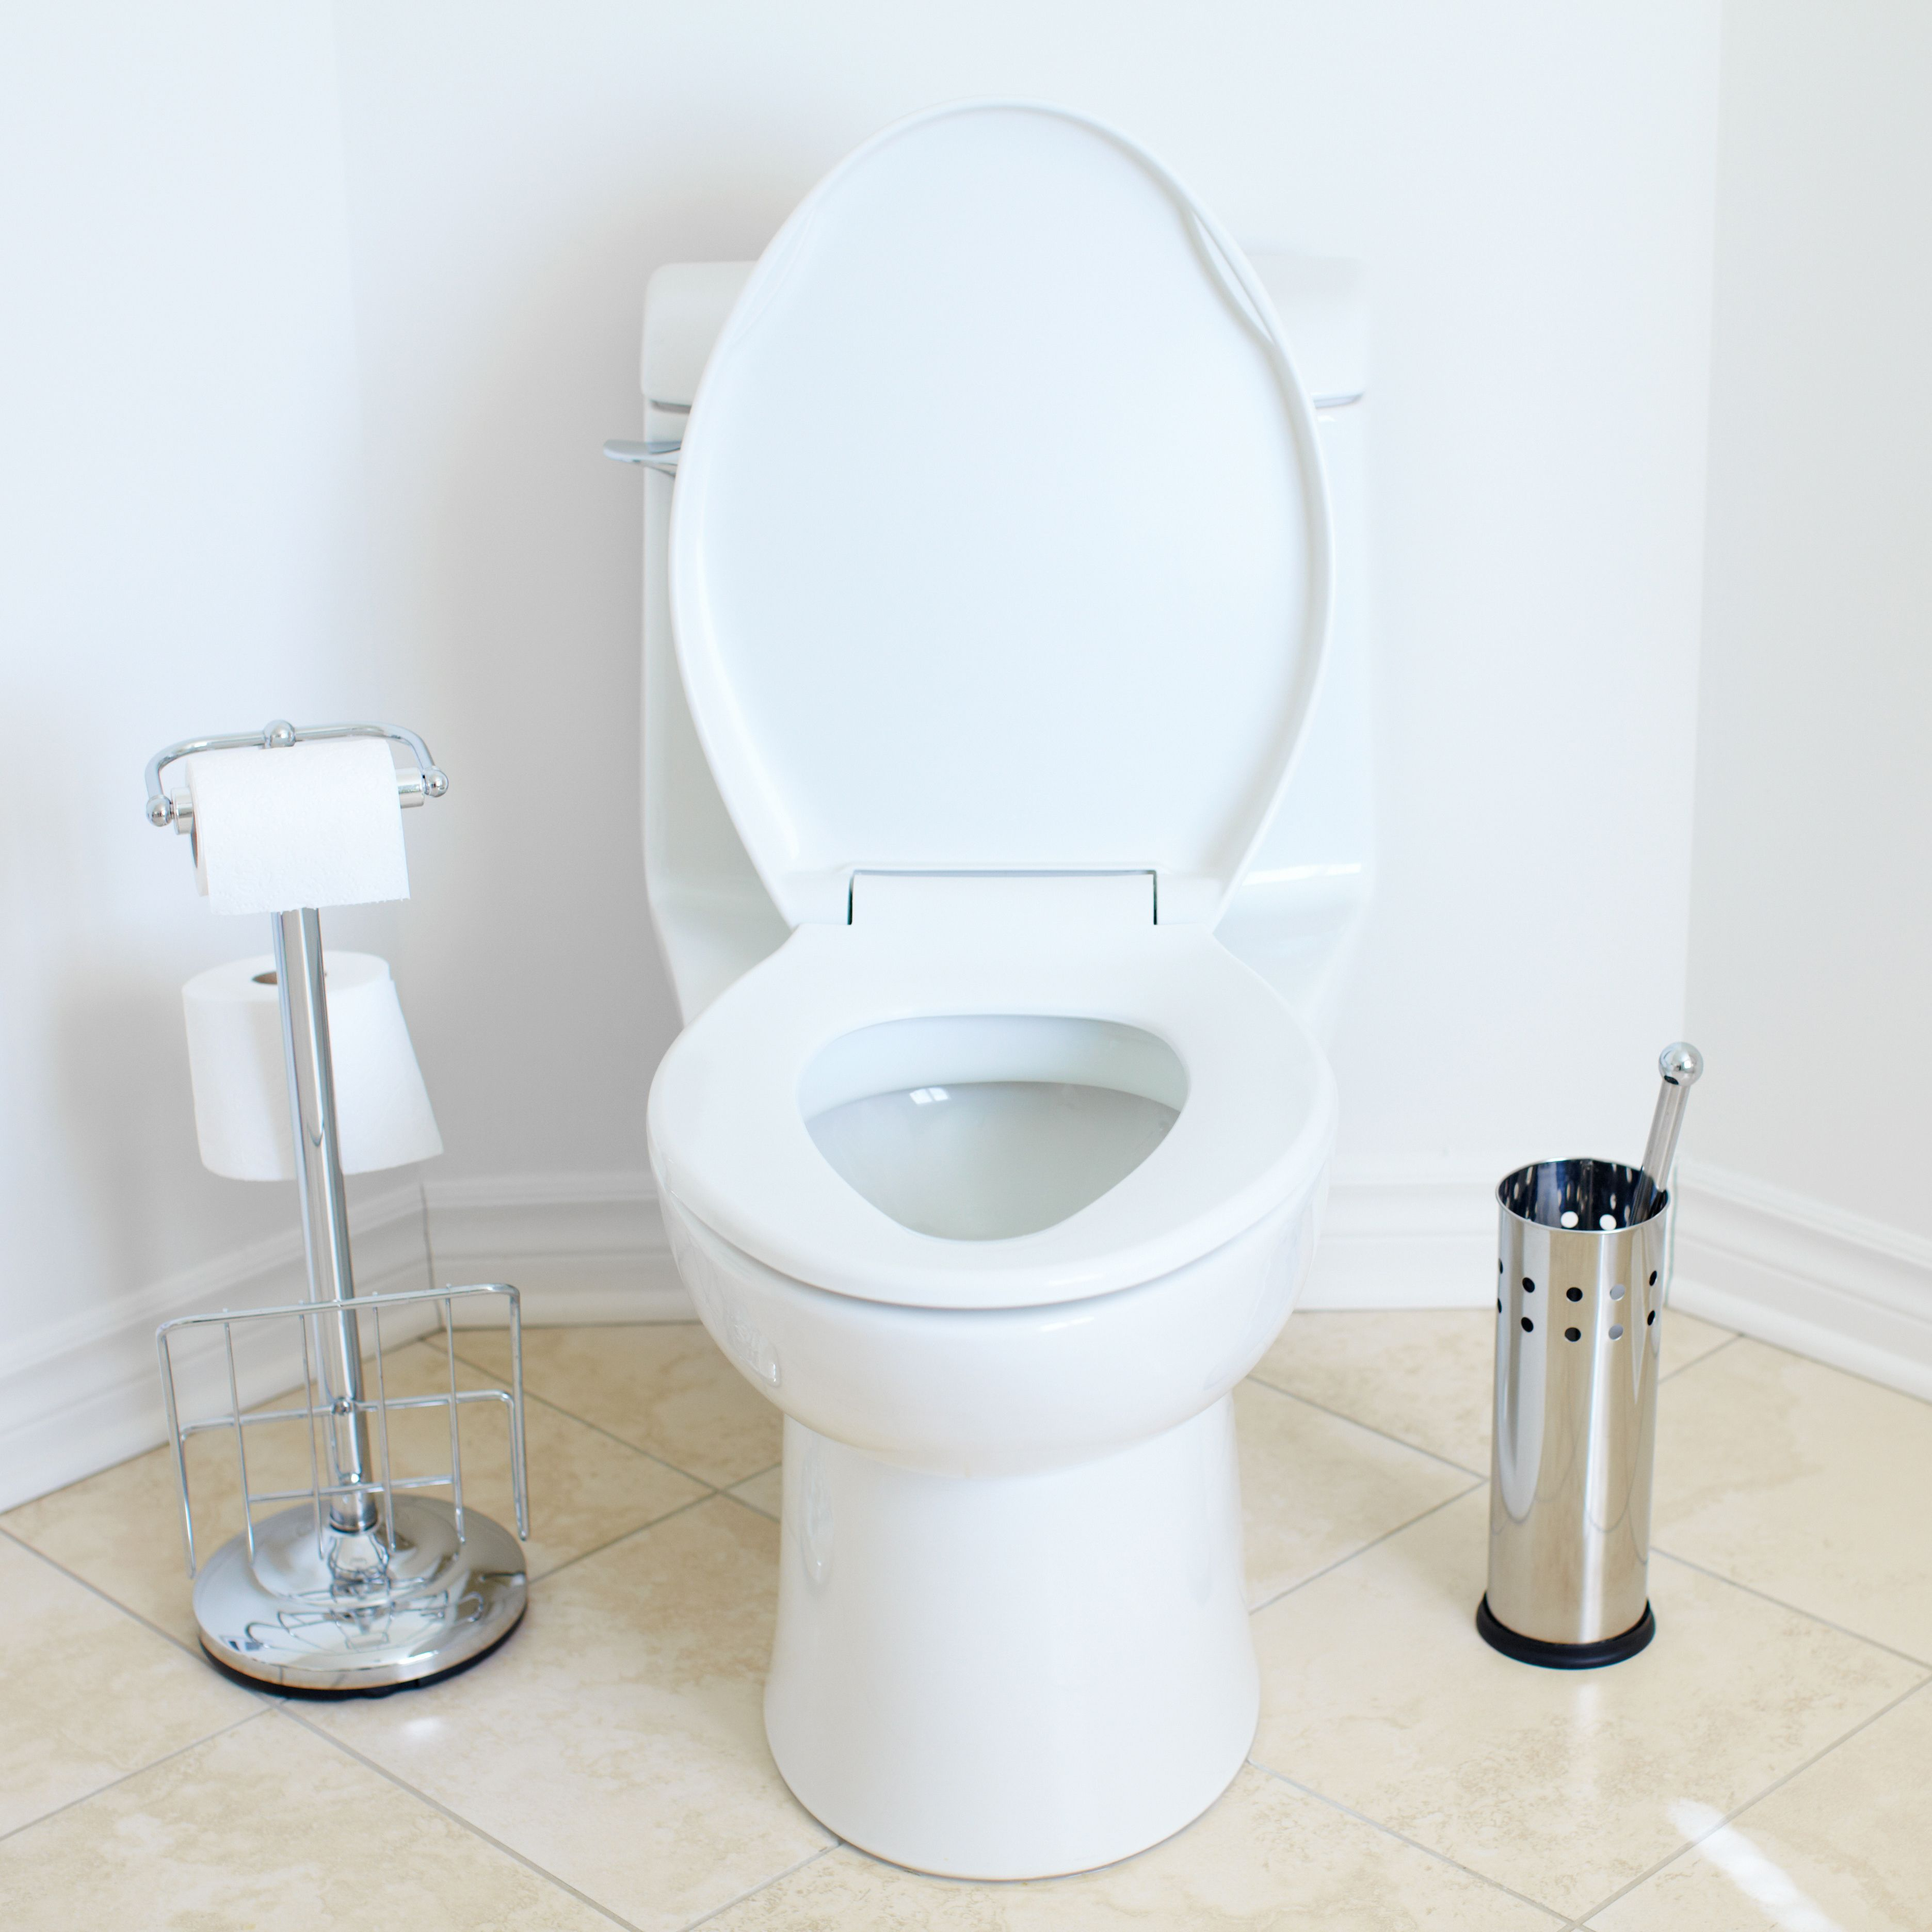 What to Do When Your Toilet Floods Toilet and Unclogging drains